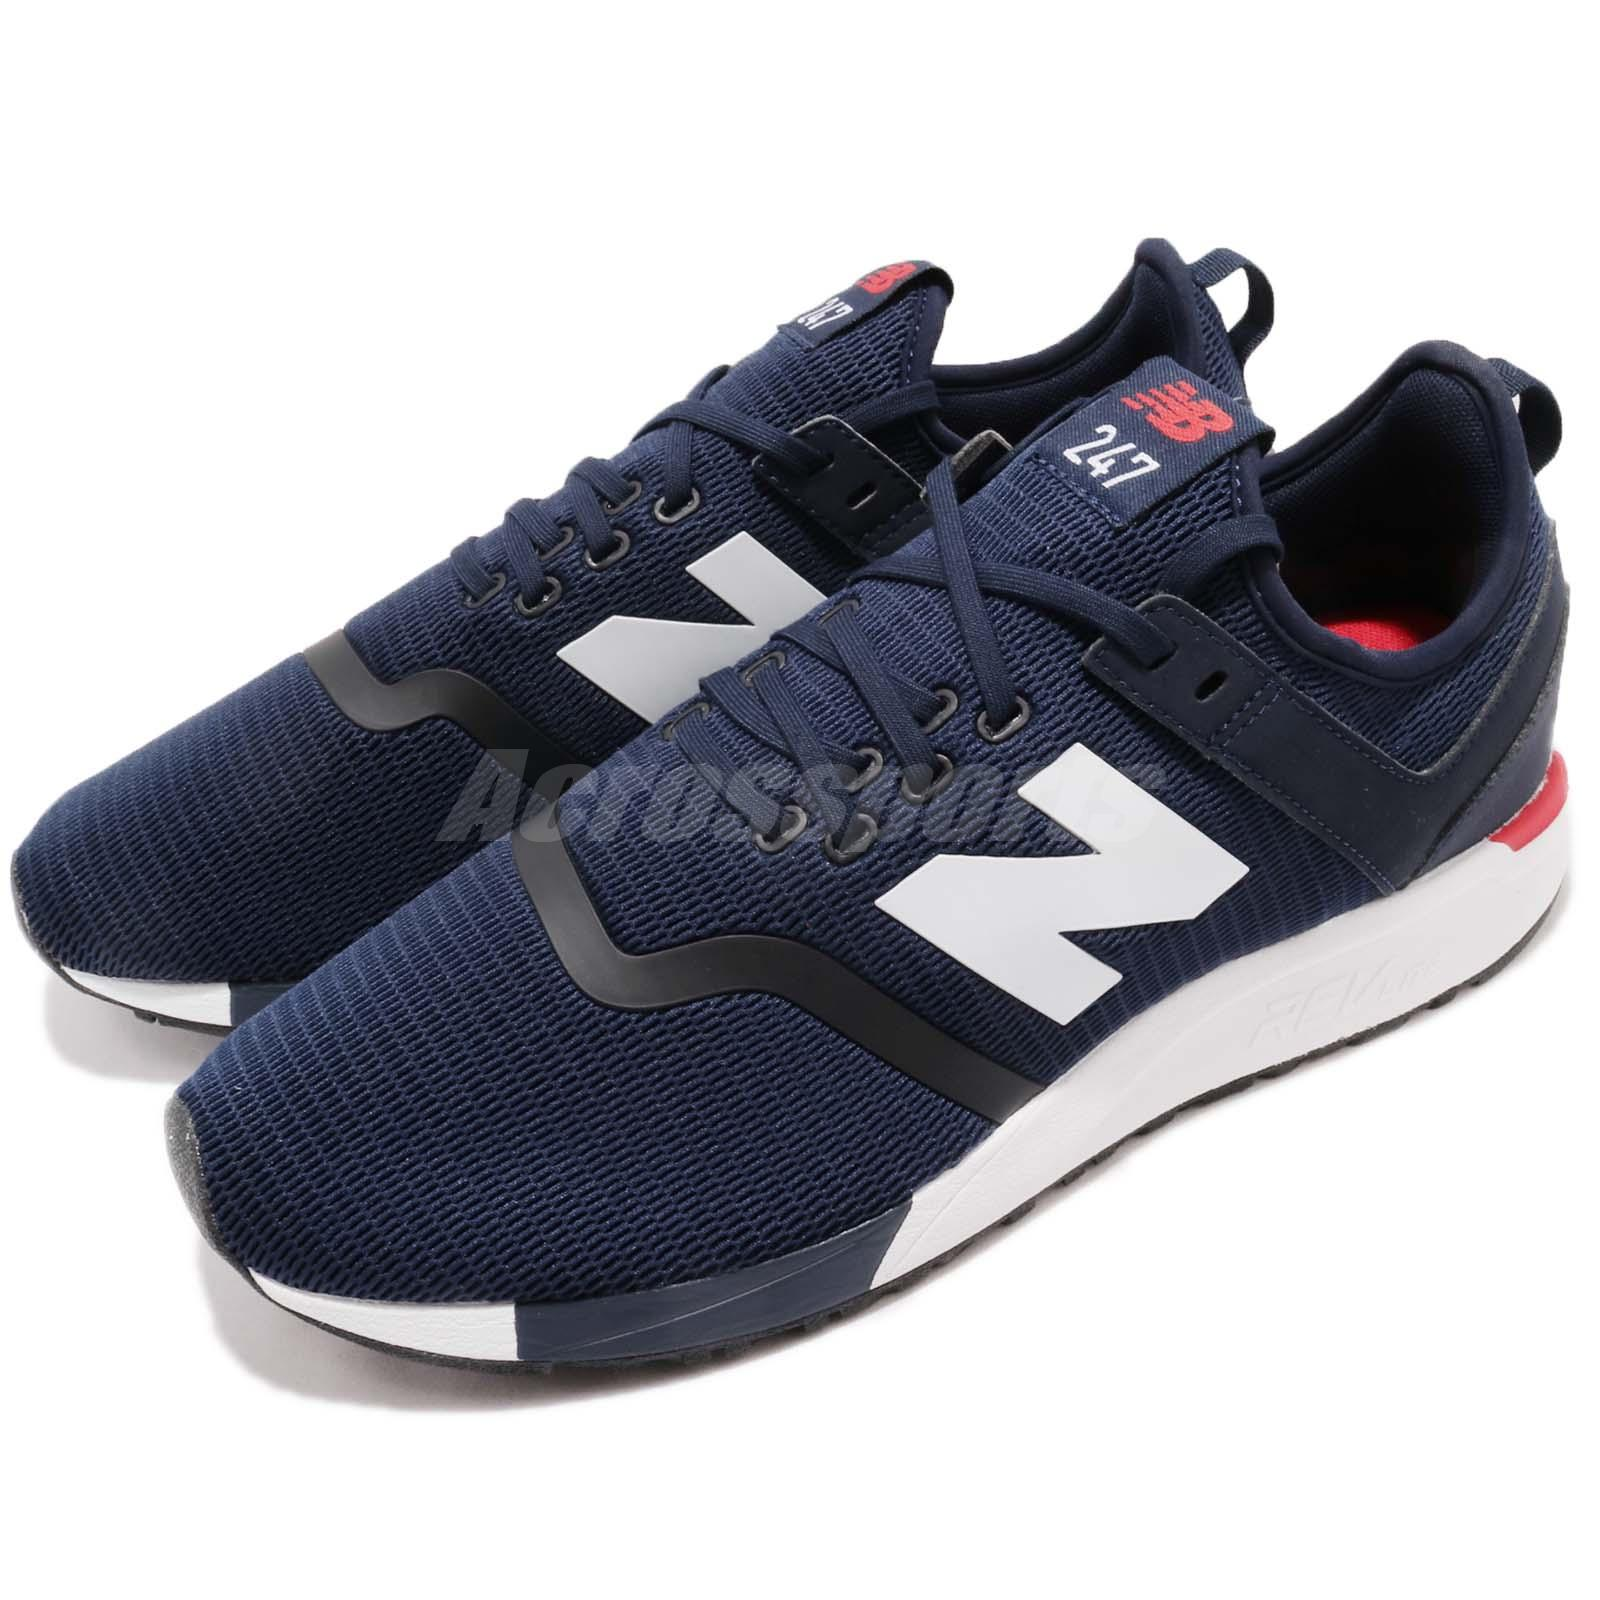 New Balance 247 Decon Men's Shoes NavyWhiteRed MRL247 DH